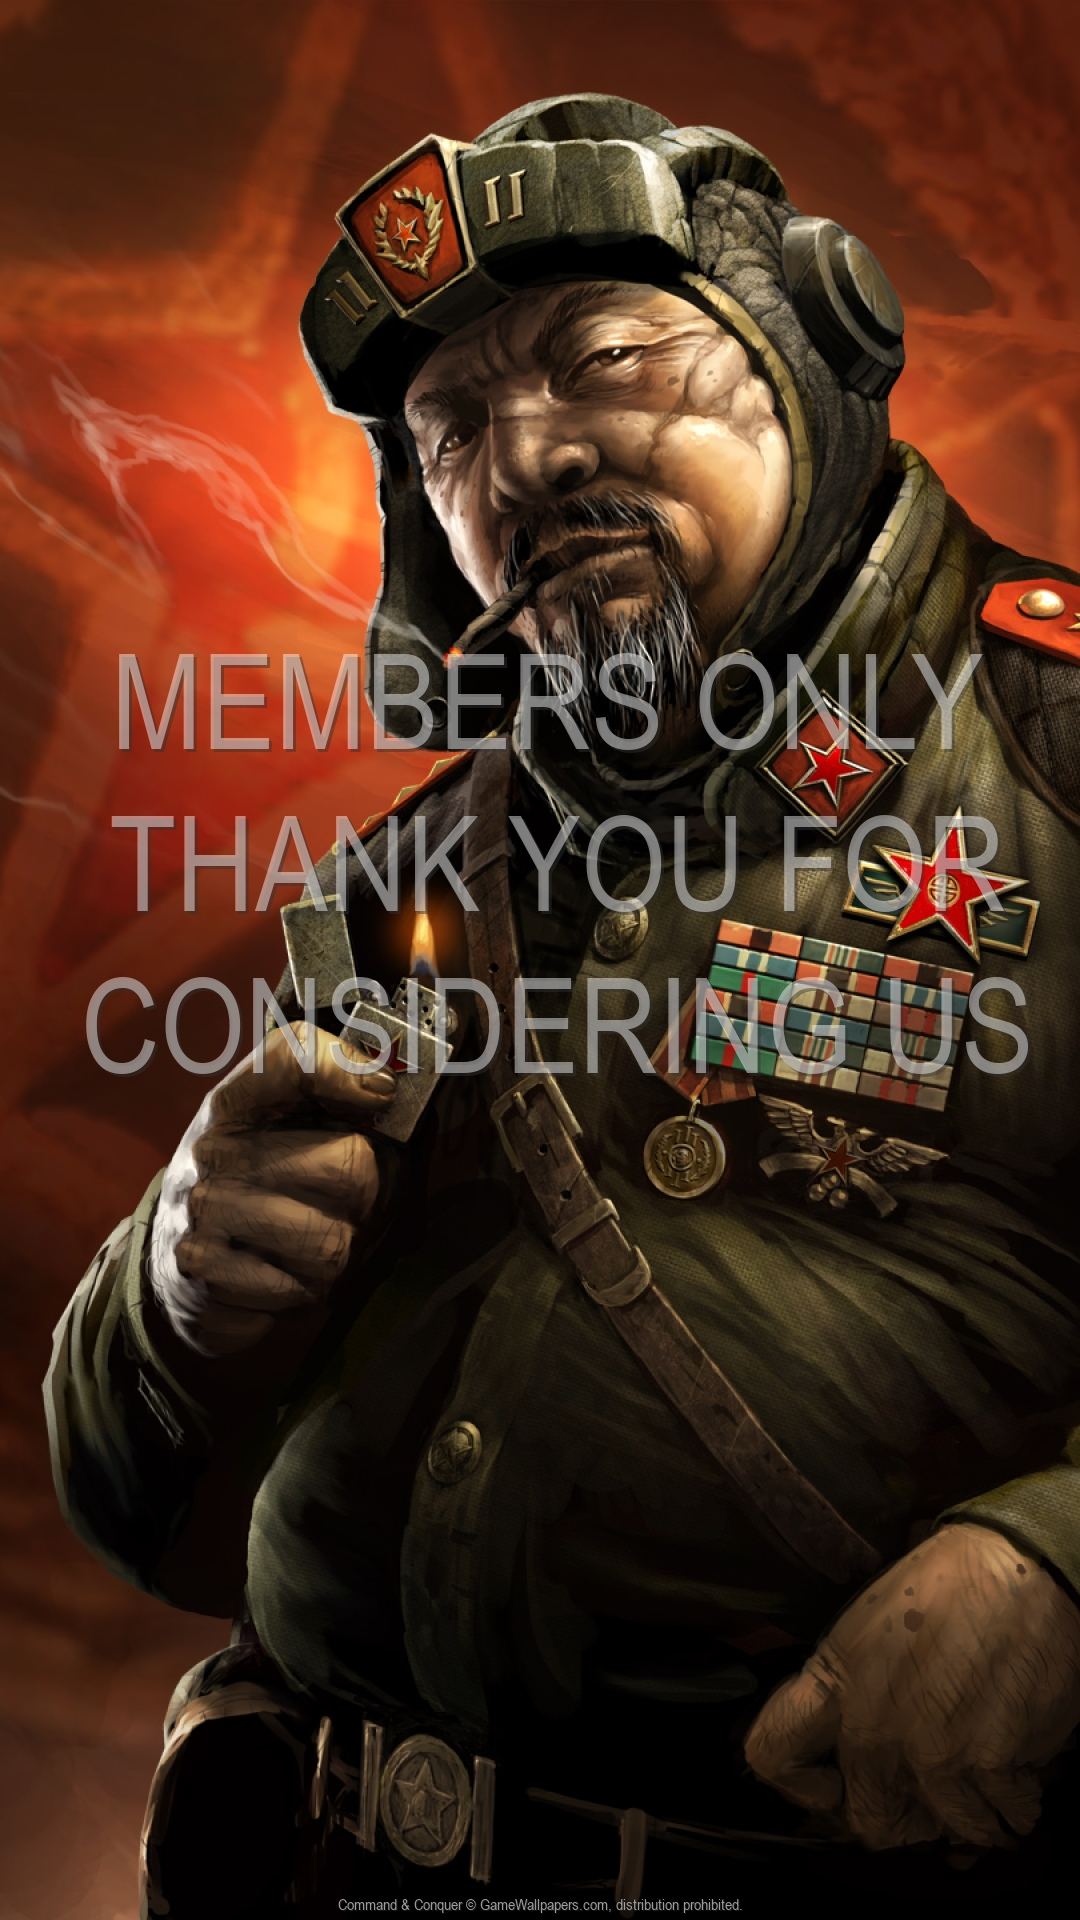 Command & Conquer 1920x1080 Mobile wallpaper or background 03